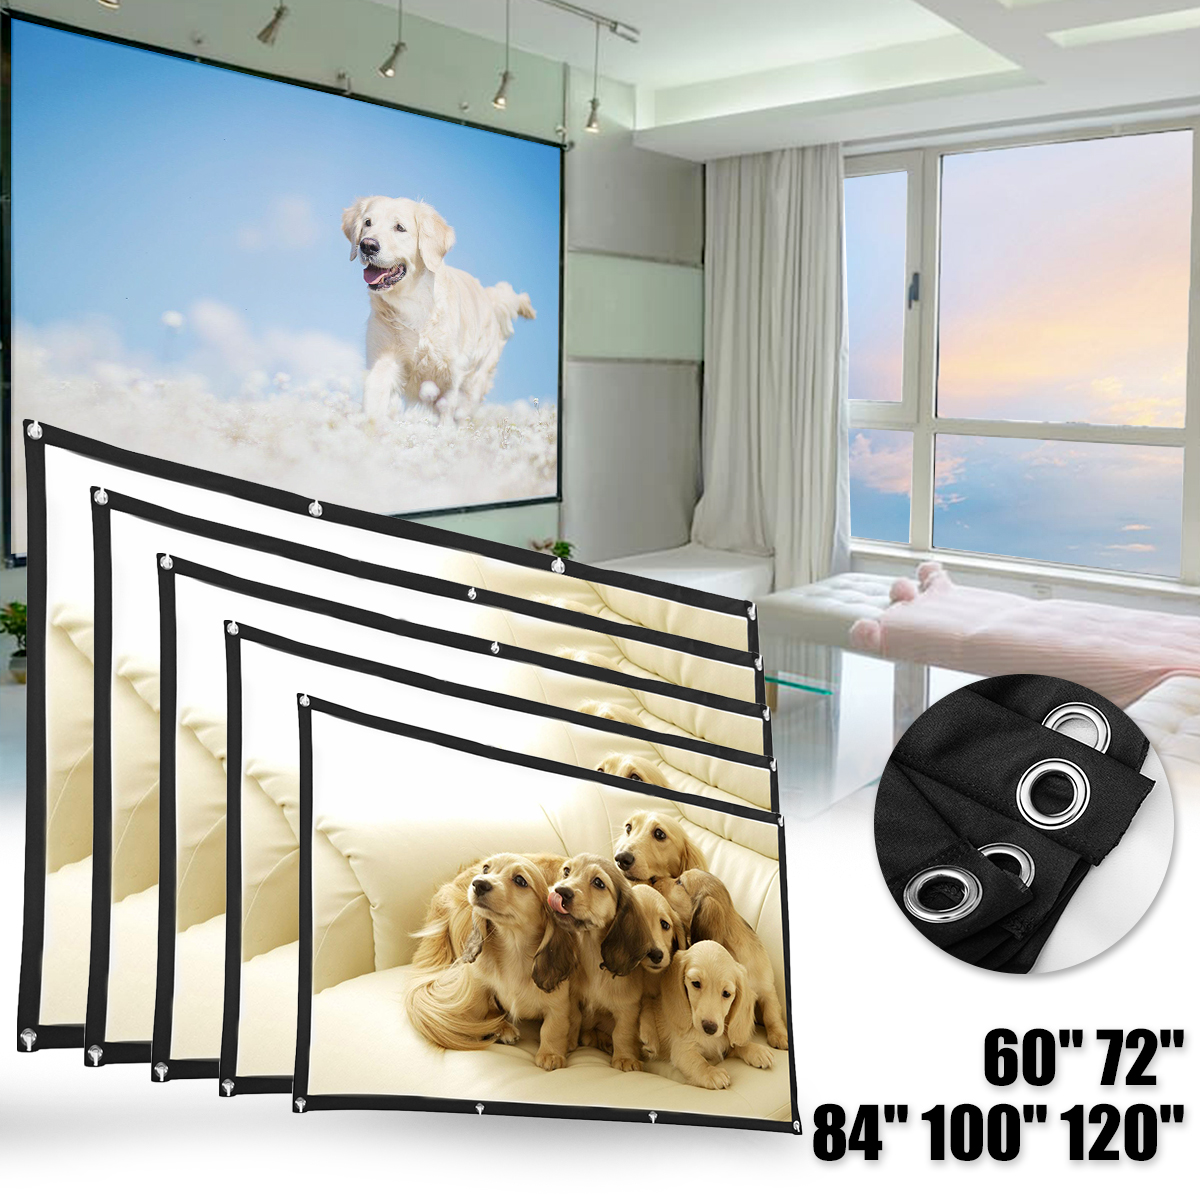 60 72 84 100 120 Inch 16:9 Portable Projector Screen Projection HD Home Cinema Theater Foldable Screen Canvas for Projector support for customfree shipping 120 inch projector mount screen 16 9 gf grey